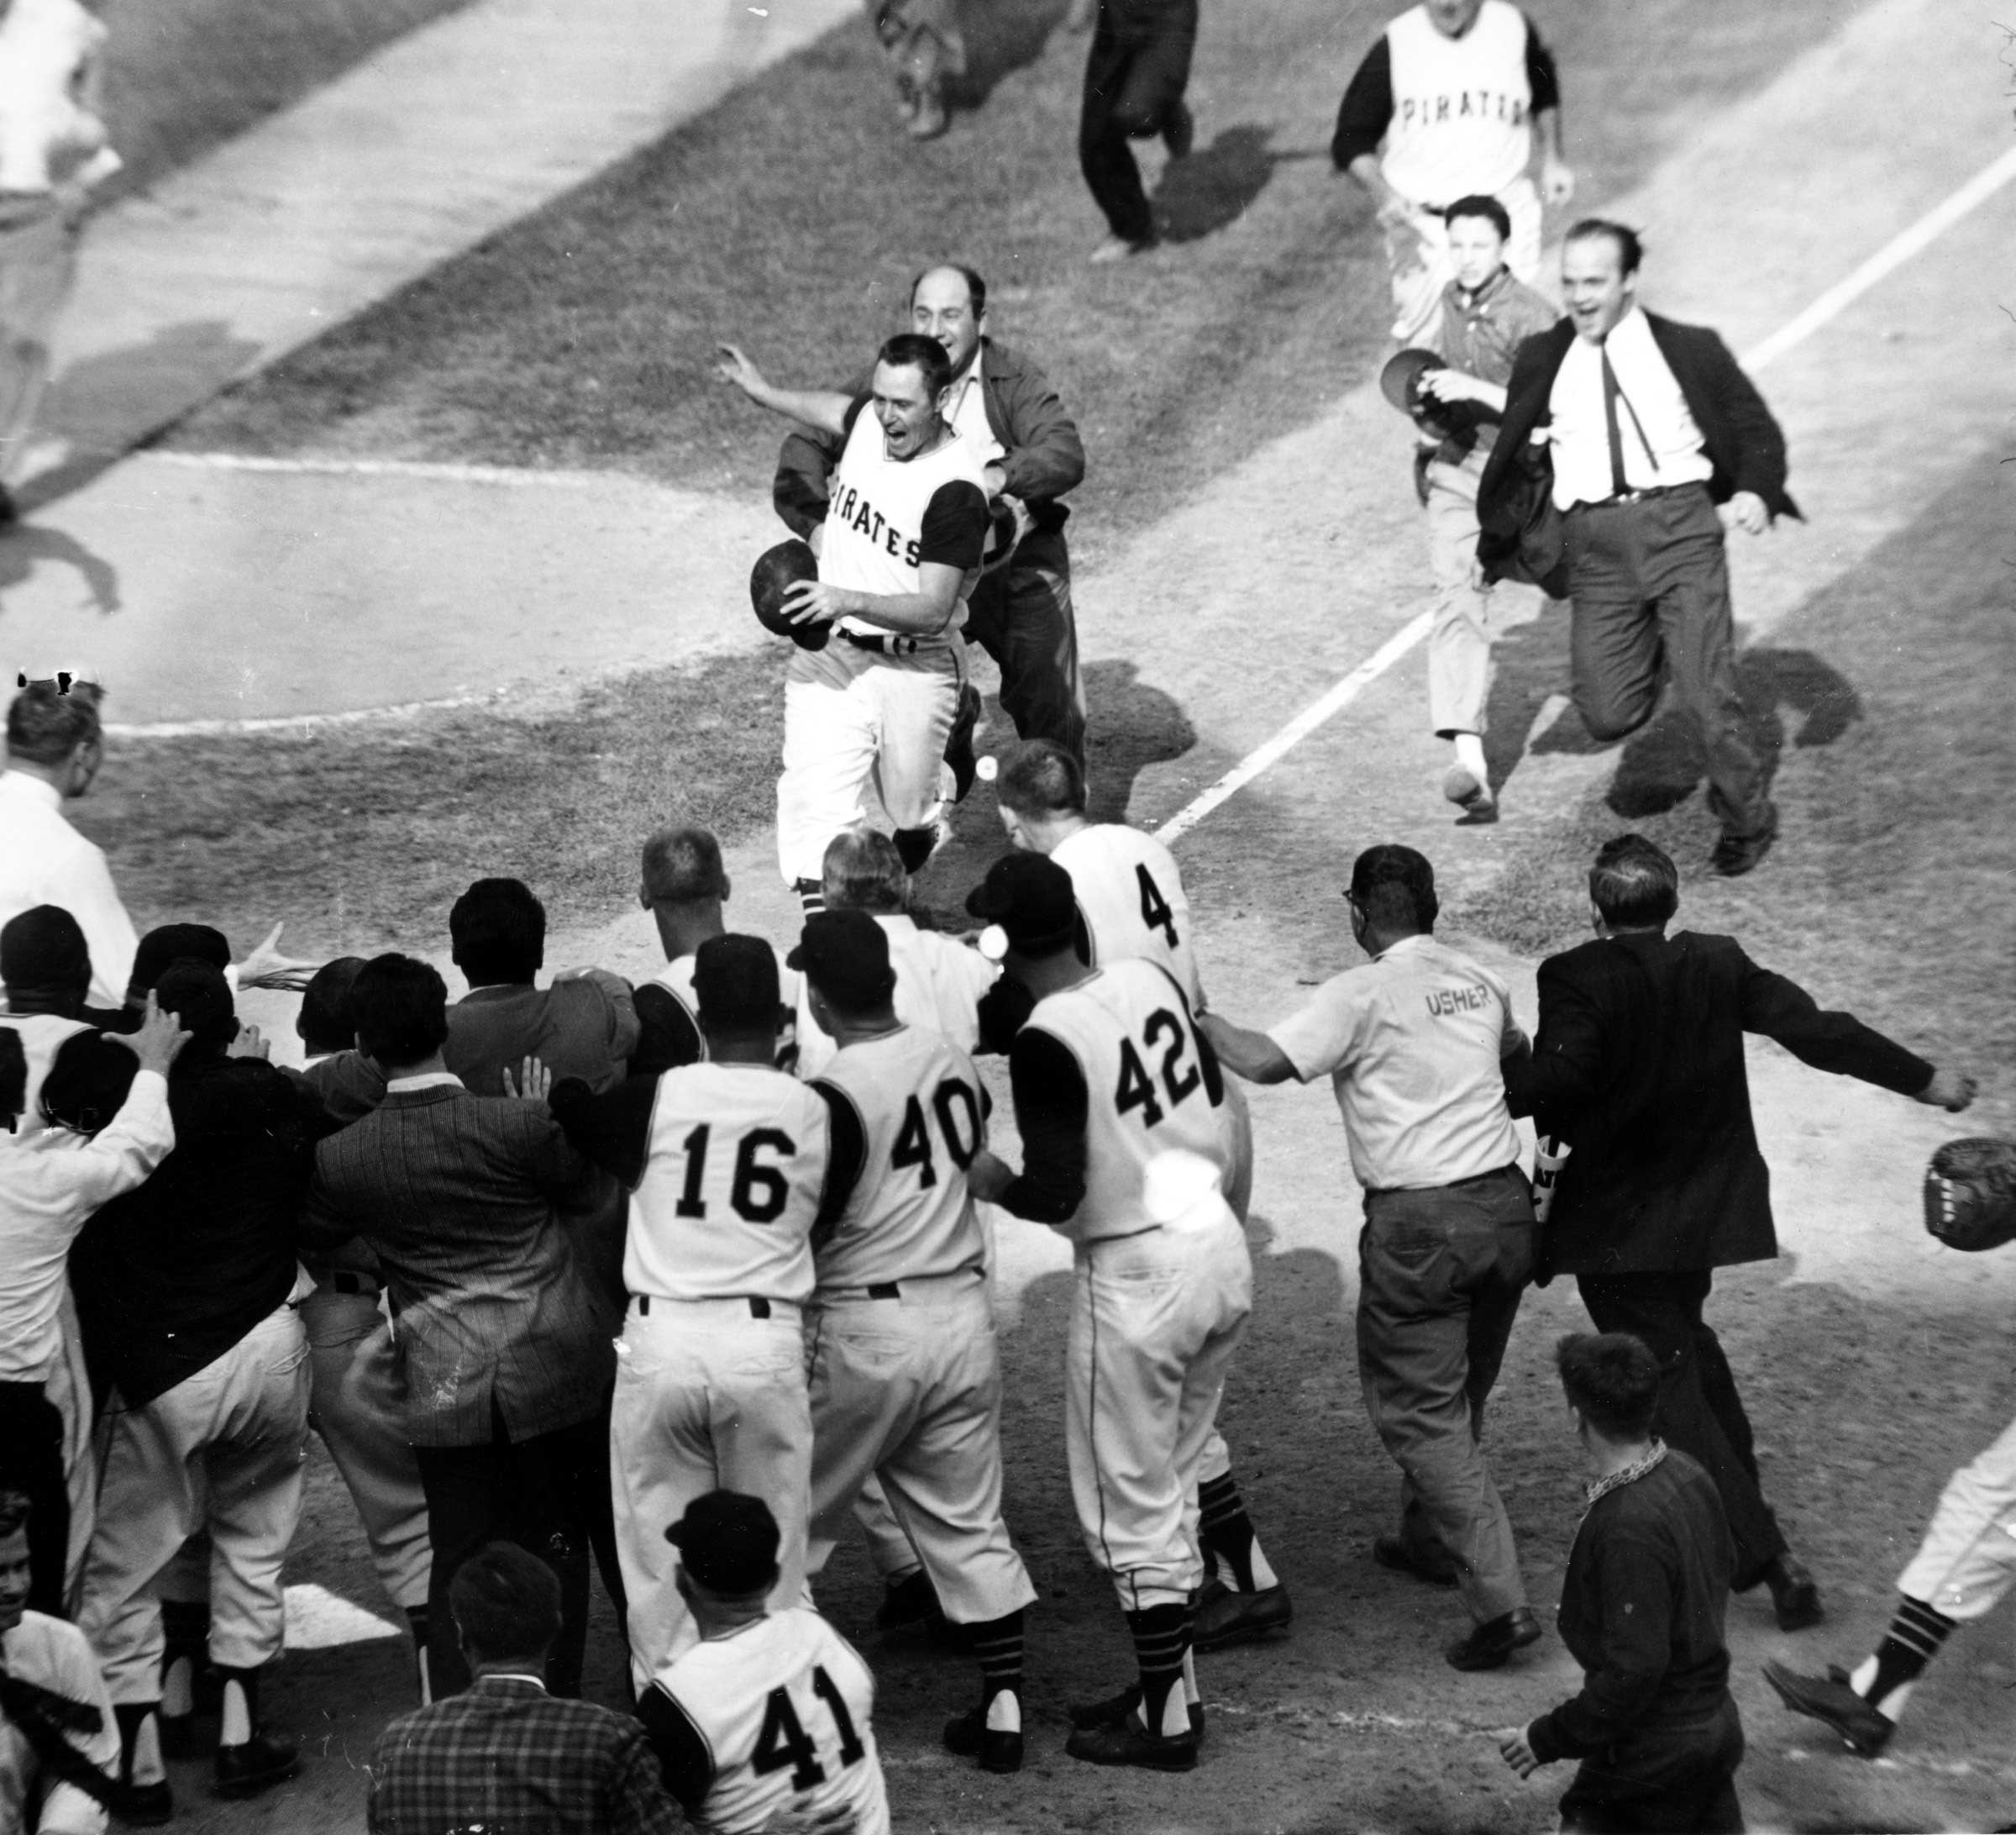 Fans rush onto the field toward Pittsburgh Pirates second baseman Bill Mazeroski as he comes home on his ninth-inning home run to win the World Series in Pittsburgh, Pa. on Oct. 13, 1960.